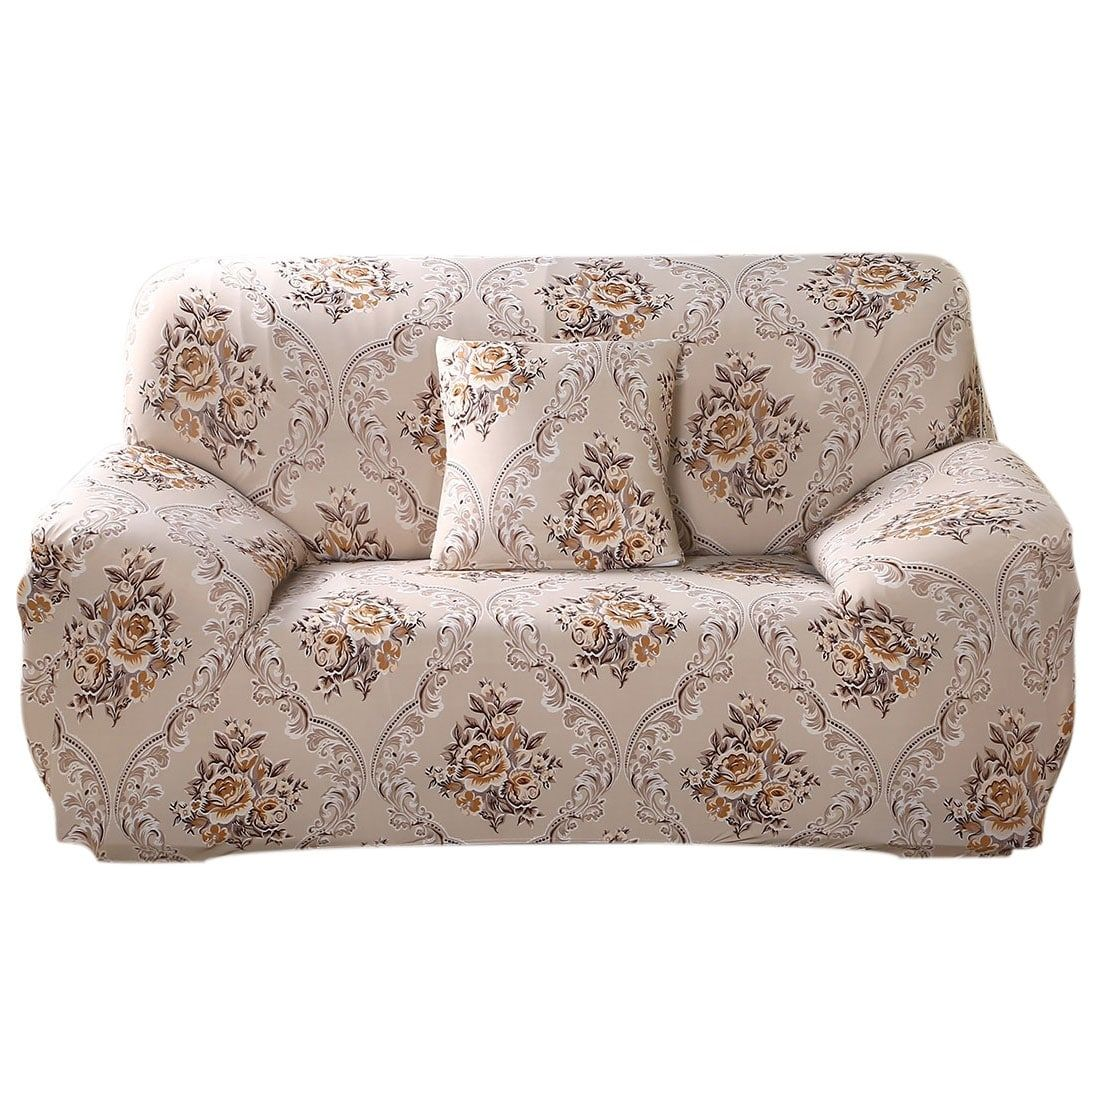 Groovy Stretch 1 2 3 Seats Sofa Cover Loveseat Slipcovers Protector Machost Co Dining Chair Design Ideas Machostcouk